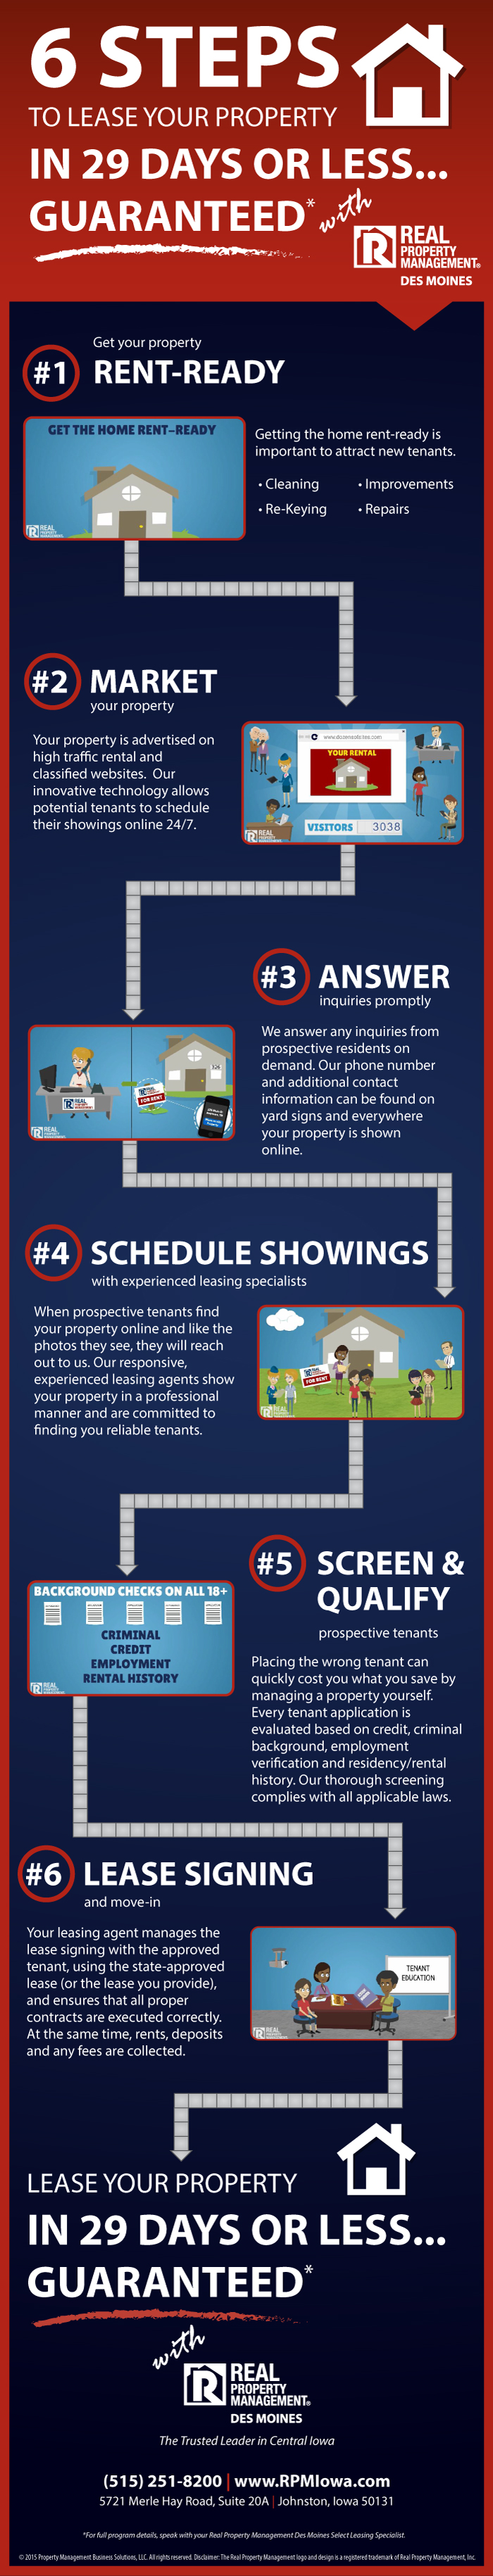 6-Steps-to-Lease-Your-Property-in-29-days-INFOGRAPHIC